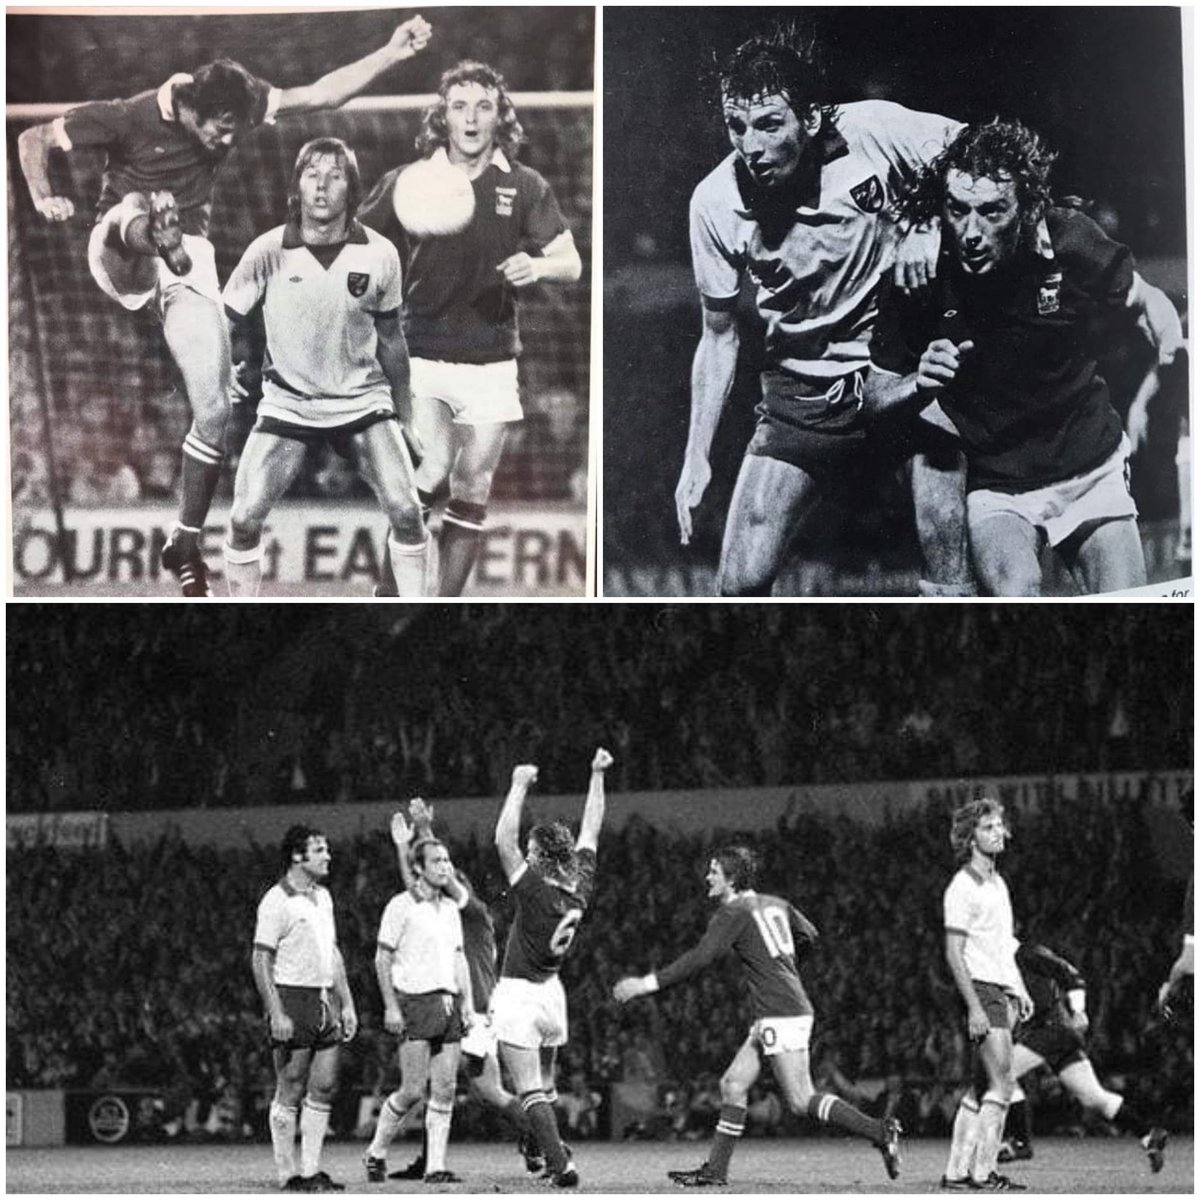 I remember the days we use to beat the budgies regularly and this shows why!! Not only did he score that day, he had their strikers in his pocket..Absolute monster of a player. 1975, biggest Derby crowd also witnessed this awesome display